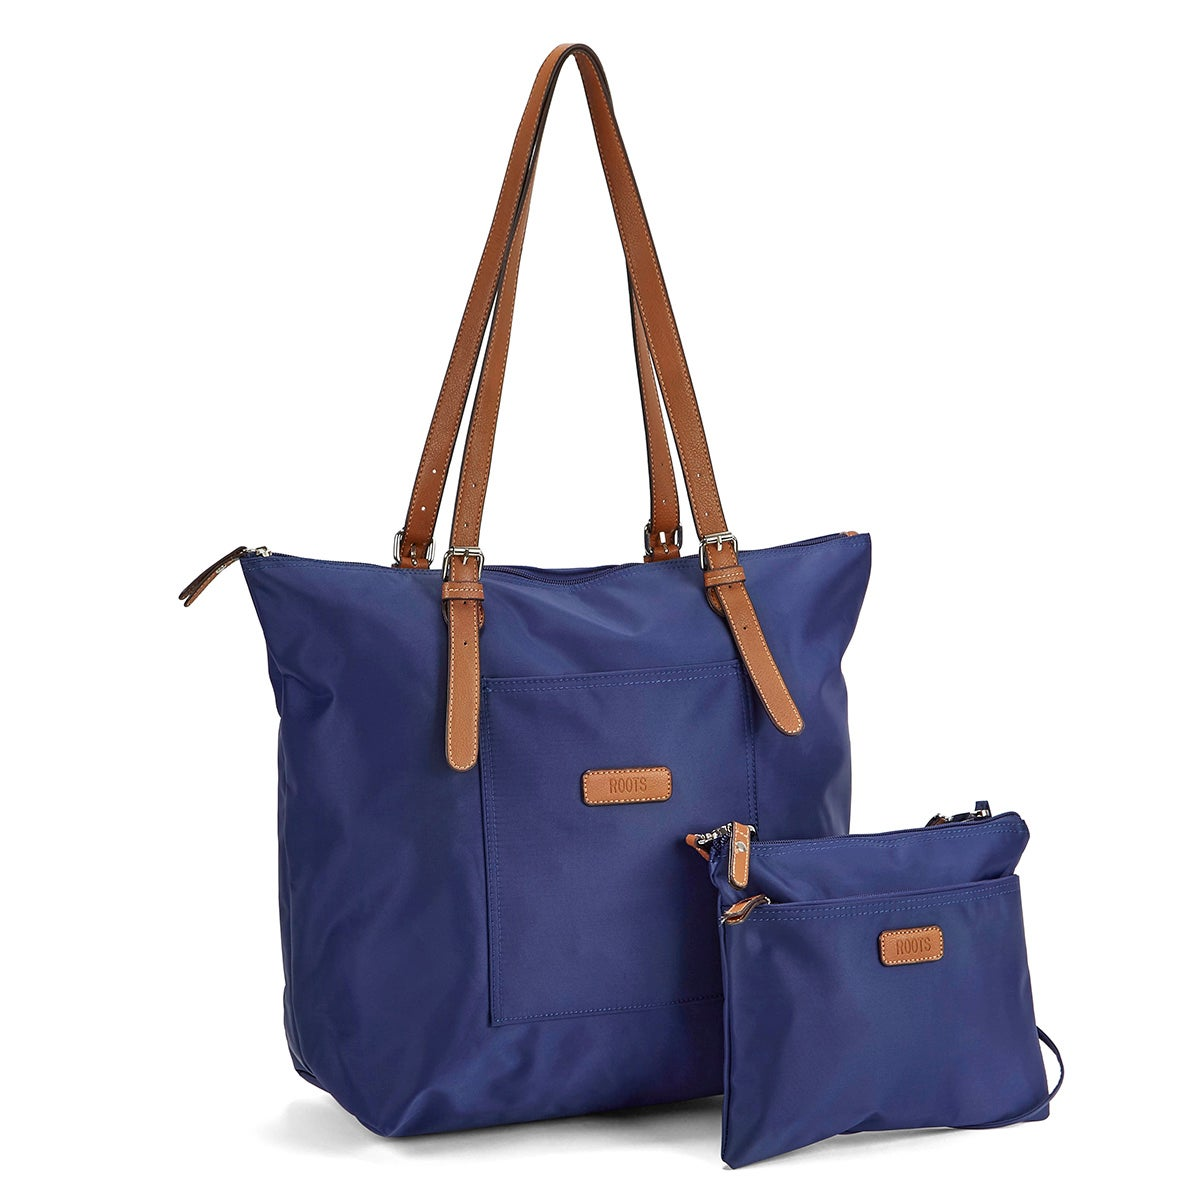 Women's R4324 navy 2 in 1 tote/crossbody bag